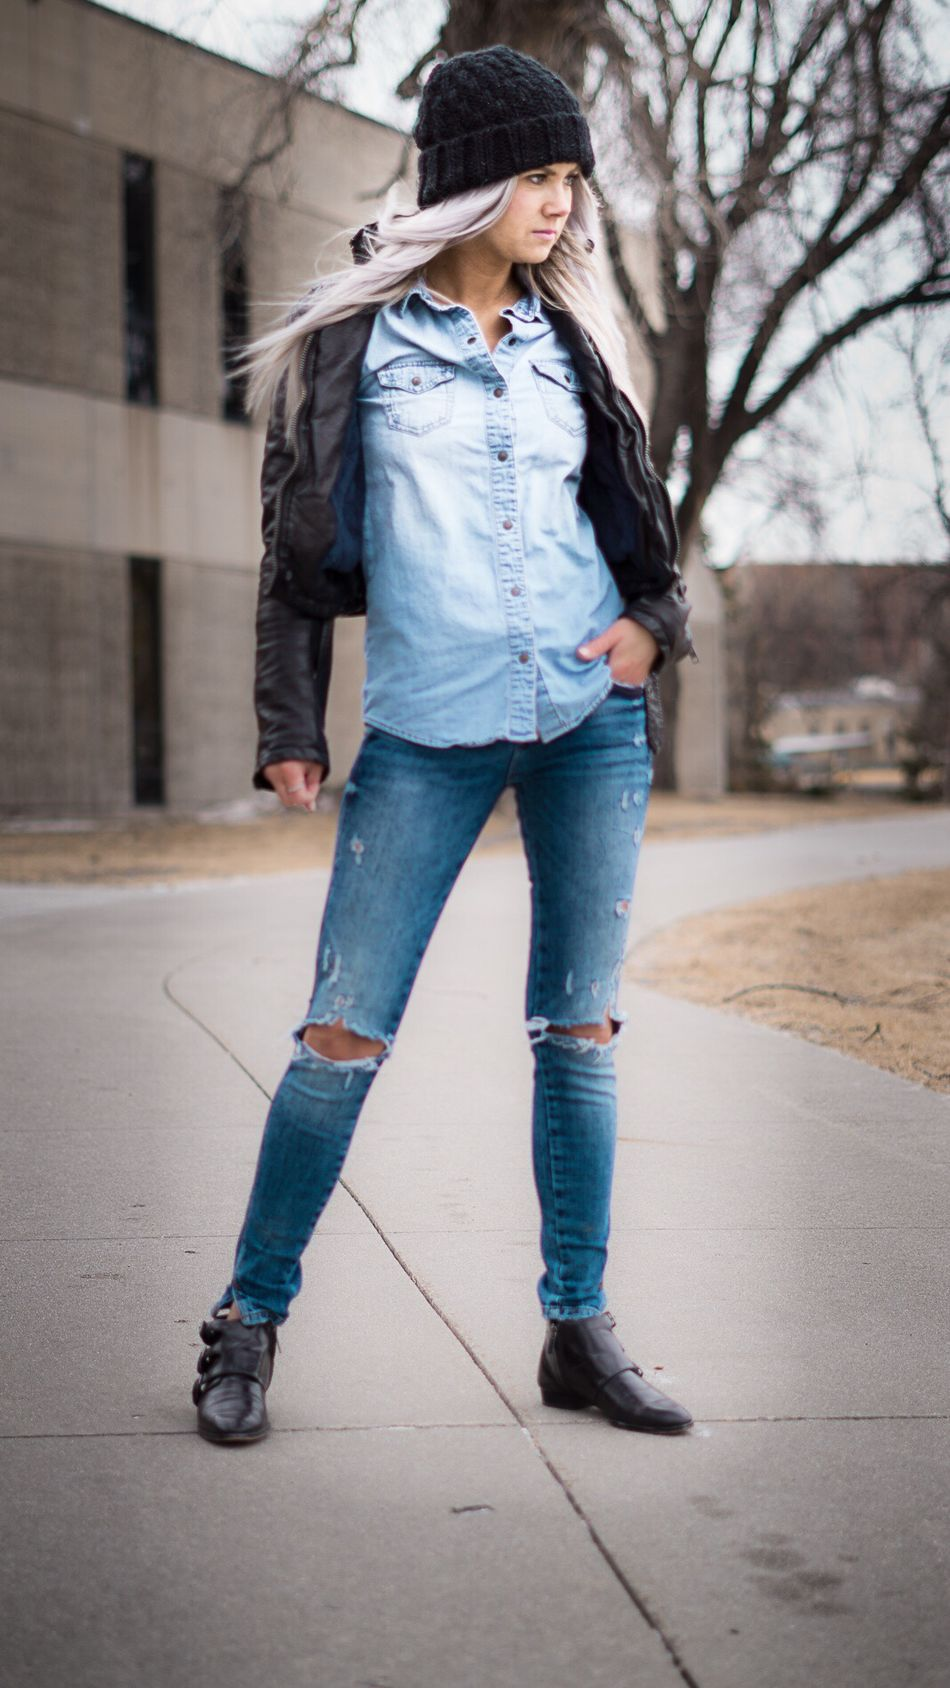 Streetphotography Full Length One Person Casual Clothing Denim Jeans Outdoors Real People Day City Leather Jacket Fashion&love&beauty Fashion Photography Fashion Style Lifestyle